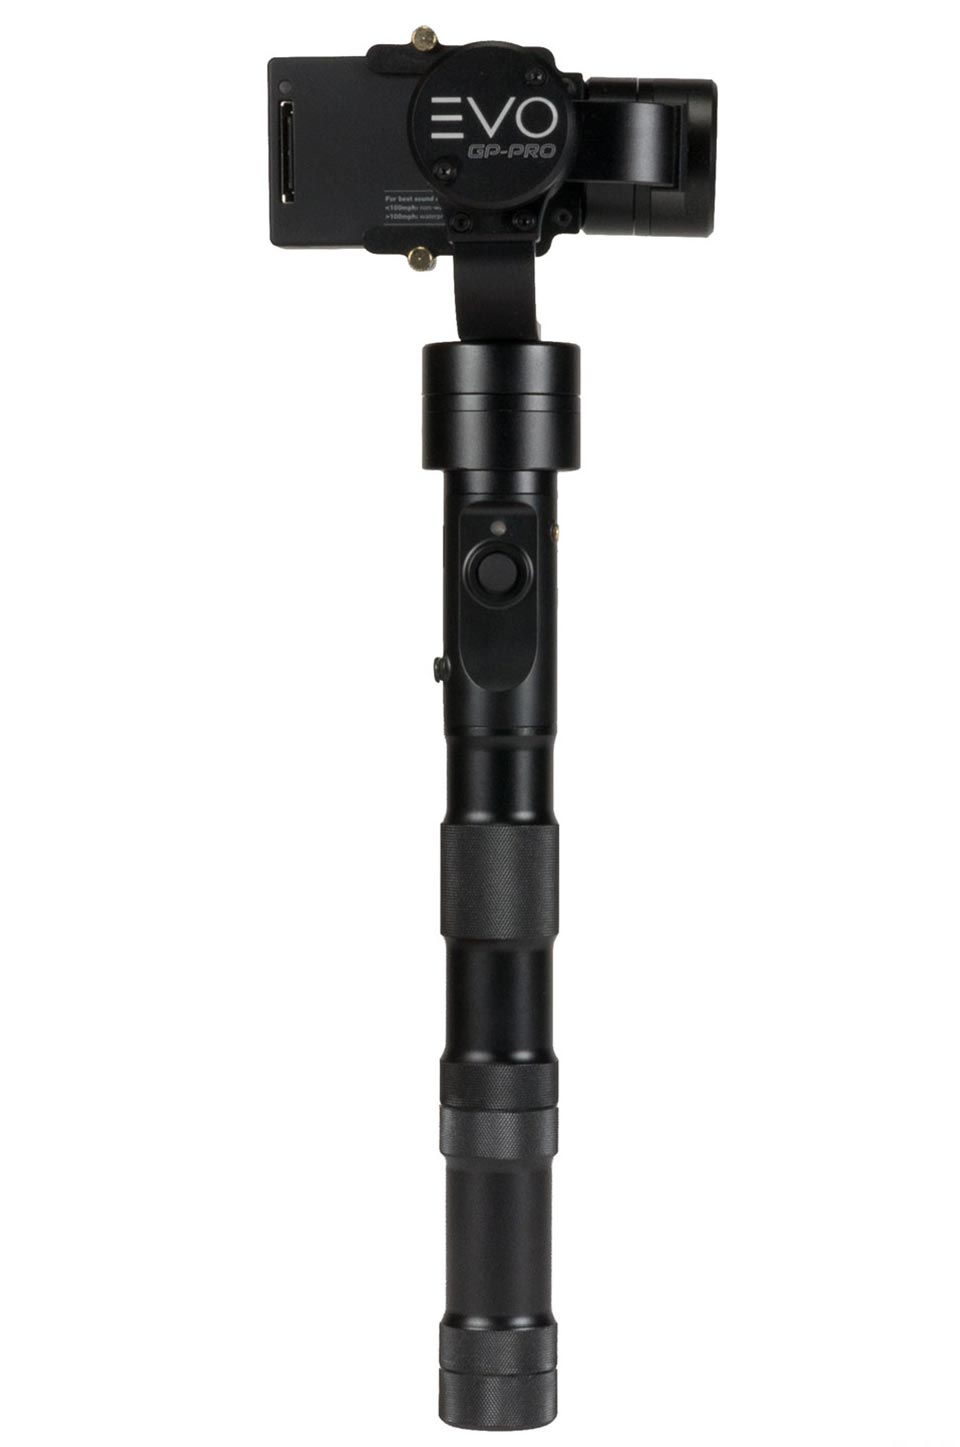 EVO GP-Pro gimbal for GoPro Backside